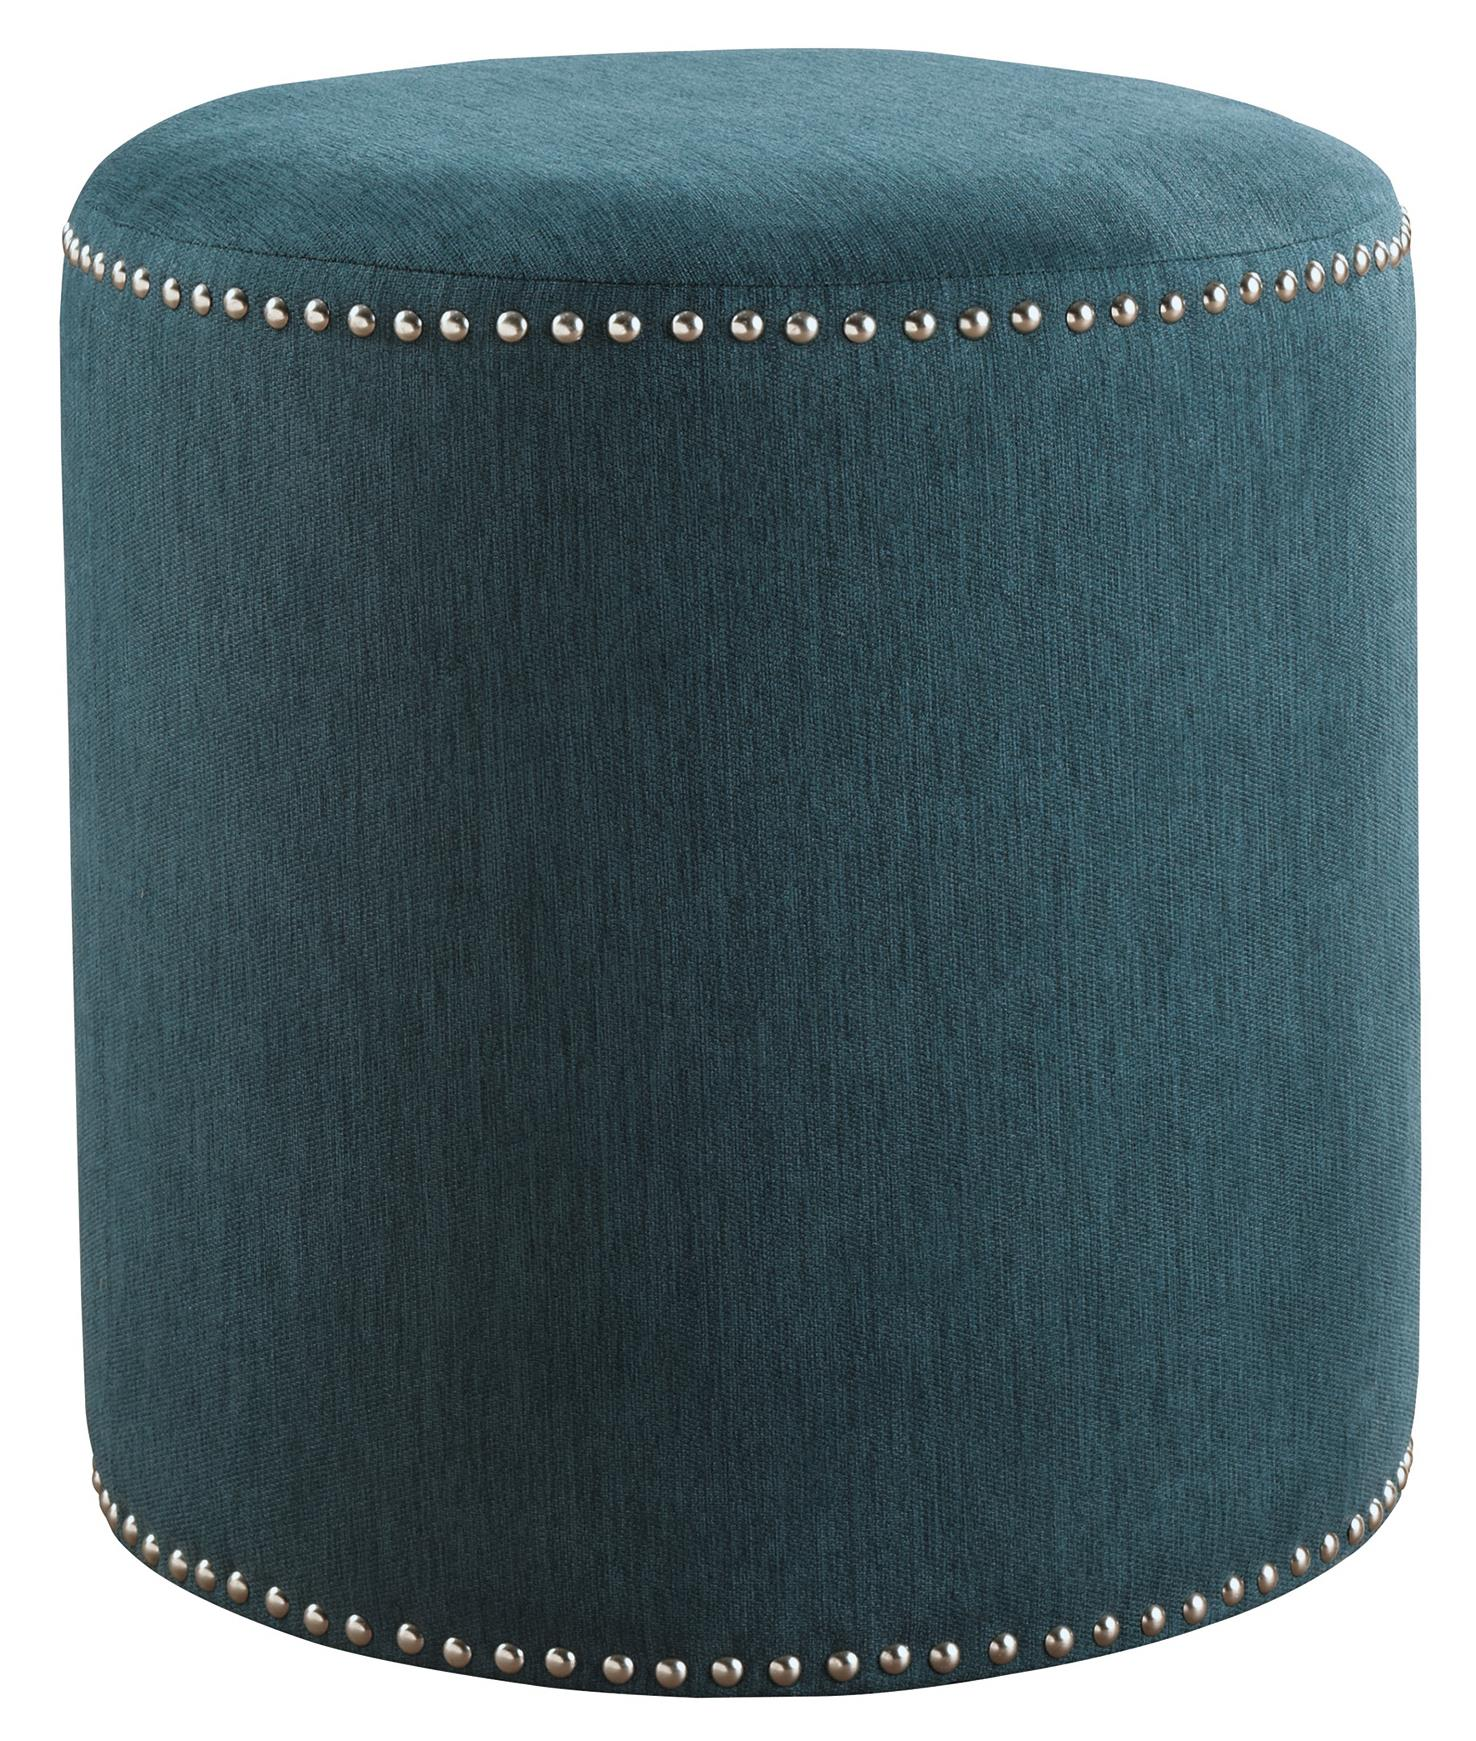 Signature Design by Ashley Revel Accent Ottoman - Item Number: 6810213